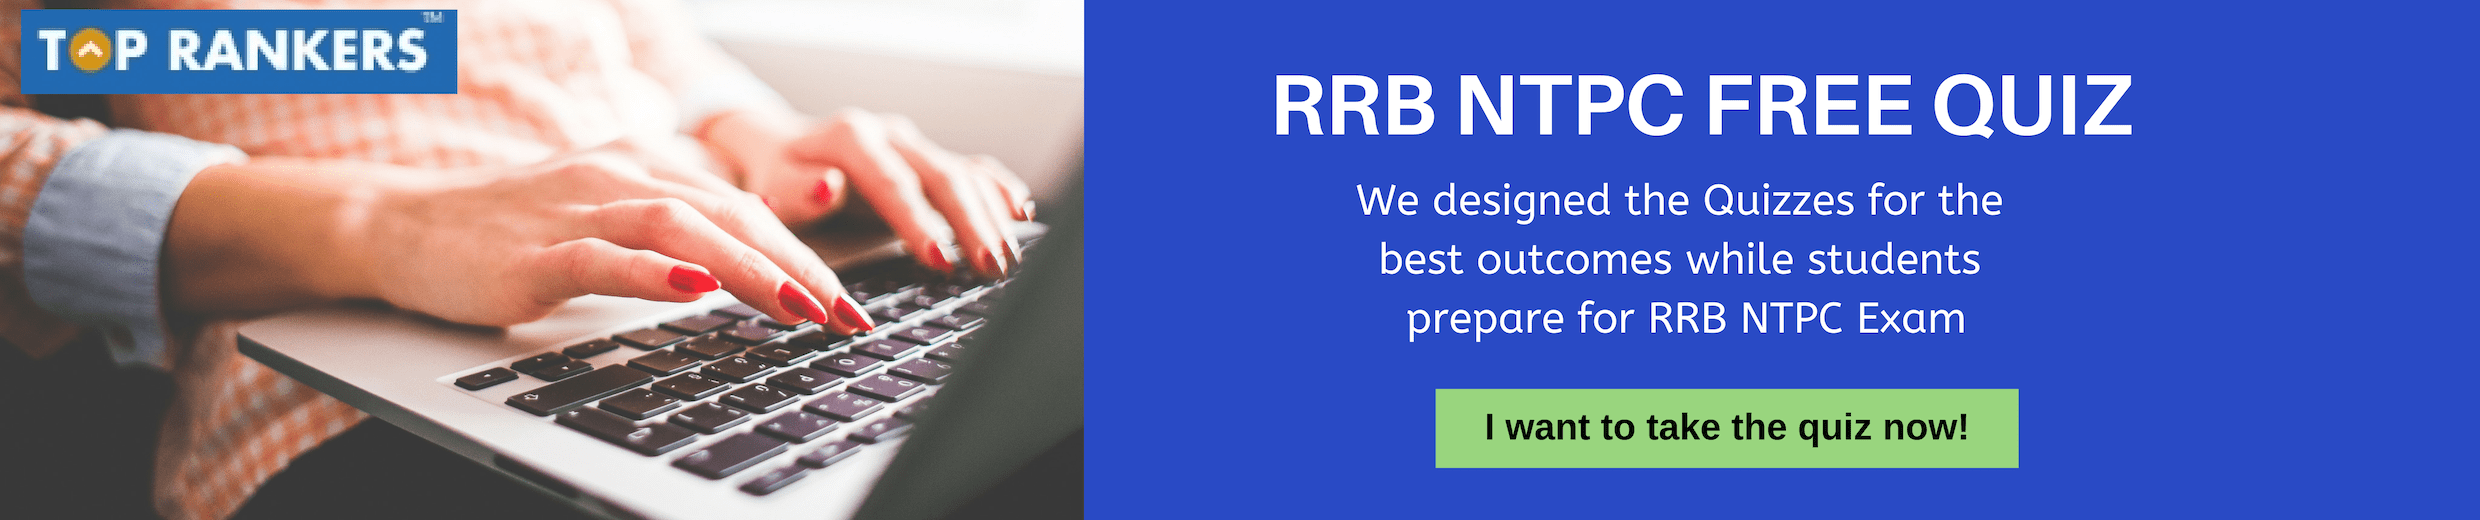 rrb group d eligibility